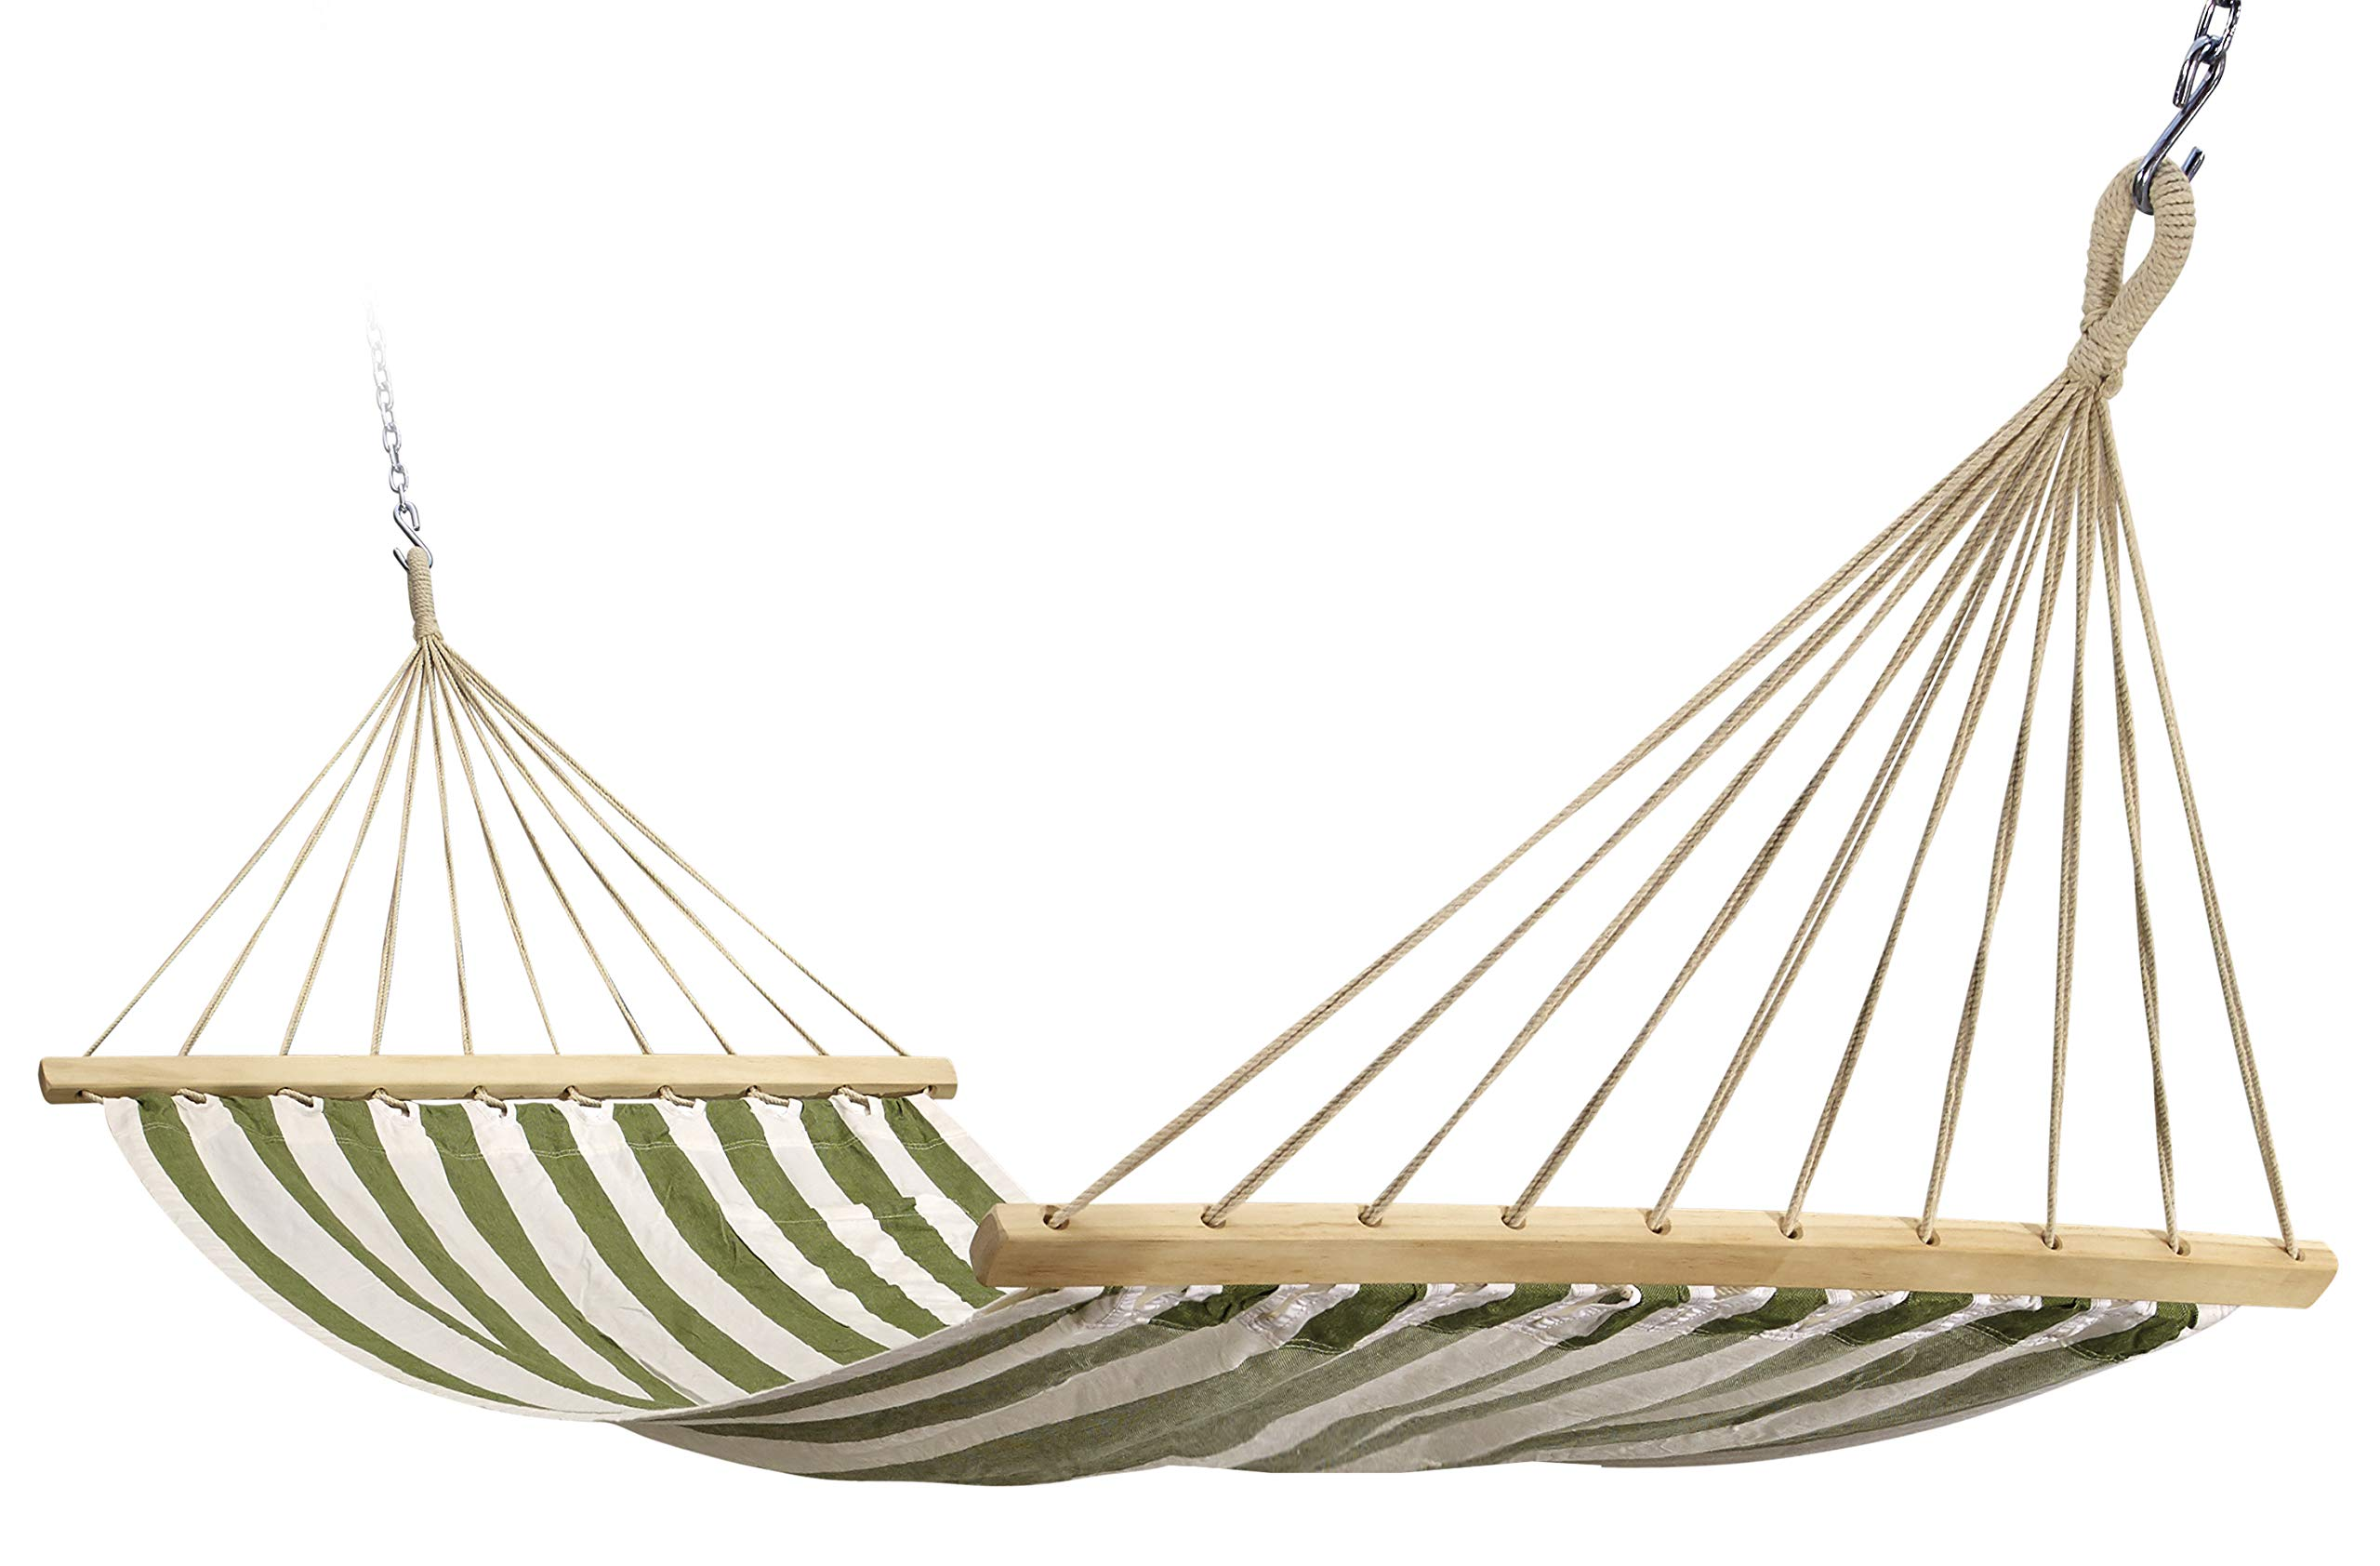 Hygge - Single Fabric Hammock with Stripes Made with 100% Cotton Comes with a Magazine Holder and Hardwood Spreader bar. Perfect for Your Garden and Patio! - Our hammock is made from 100% natural cotton, the hammock provides extreme comfort and the number of suspension contributes to the durability of this product. This hammock is yarn-dyed fabric. This hammock comes with a magazine/ iPad holder and a multi-purpose co-ordinated fabric bag that can be used as a bag-pack as well. Dimensions: Bed Width: 48 inches; Bed Length: 78 inches; Overall Length: 132 inches Maximum carry capacity is 450 pounds. - patio-furniture, patio, hammocks - 81DsWgWEw2L -